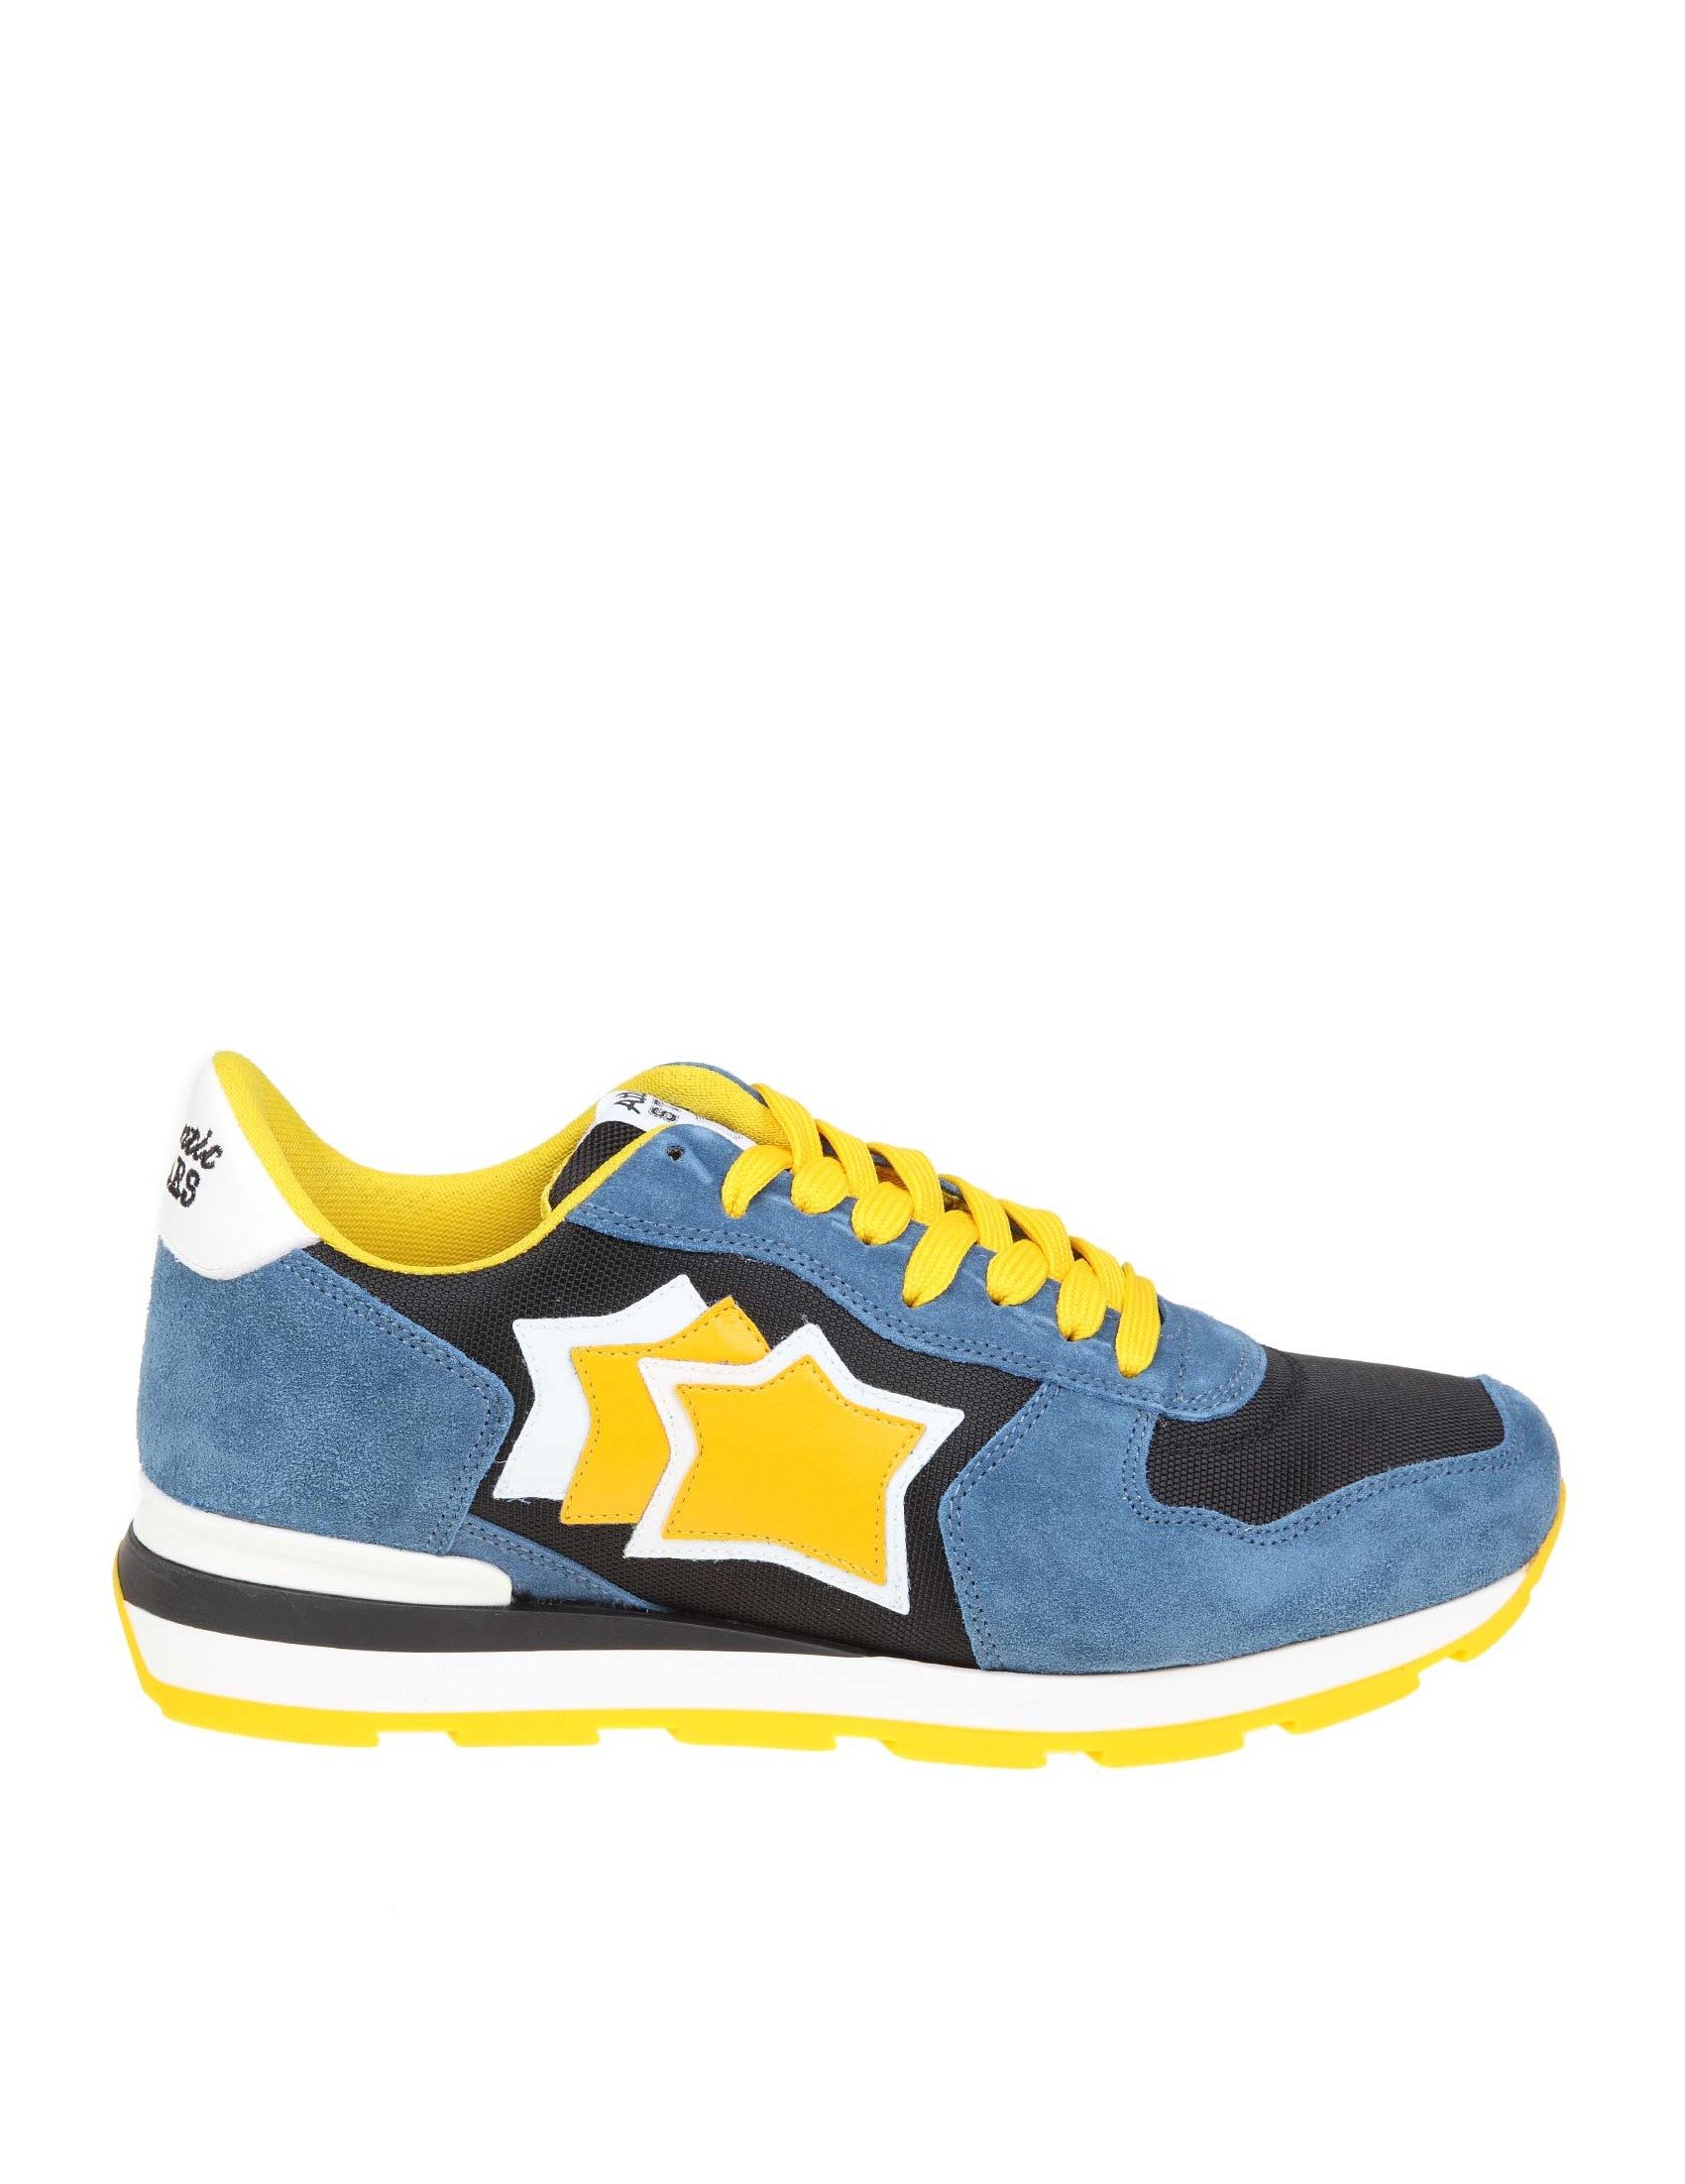 54f89d63abb035 atlantic-stars-sneakers-antares-in-suede-and-blue-and-yellow-fabric.jpg